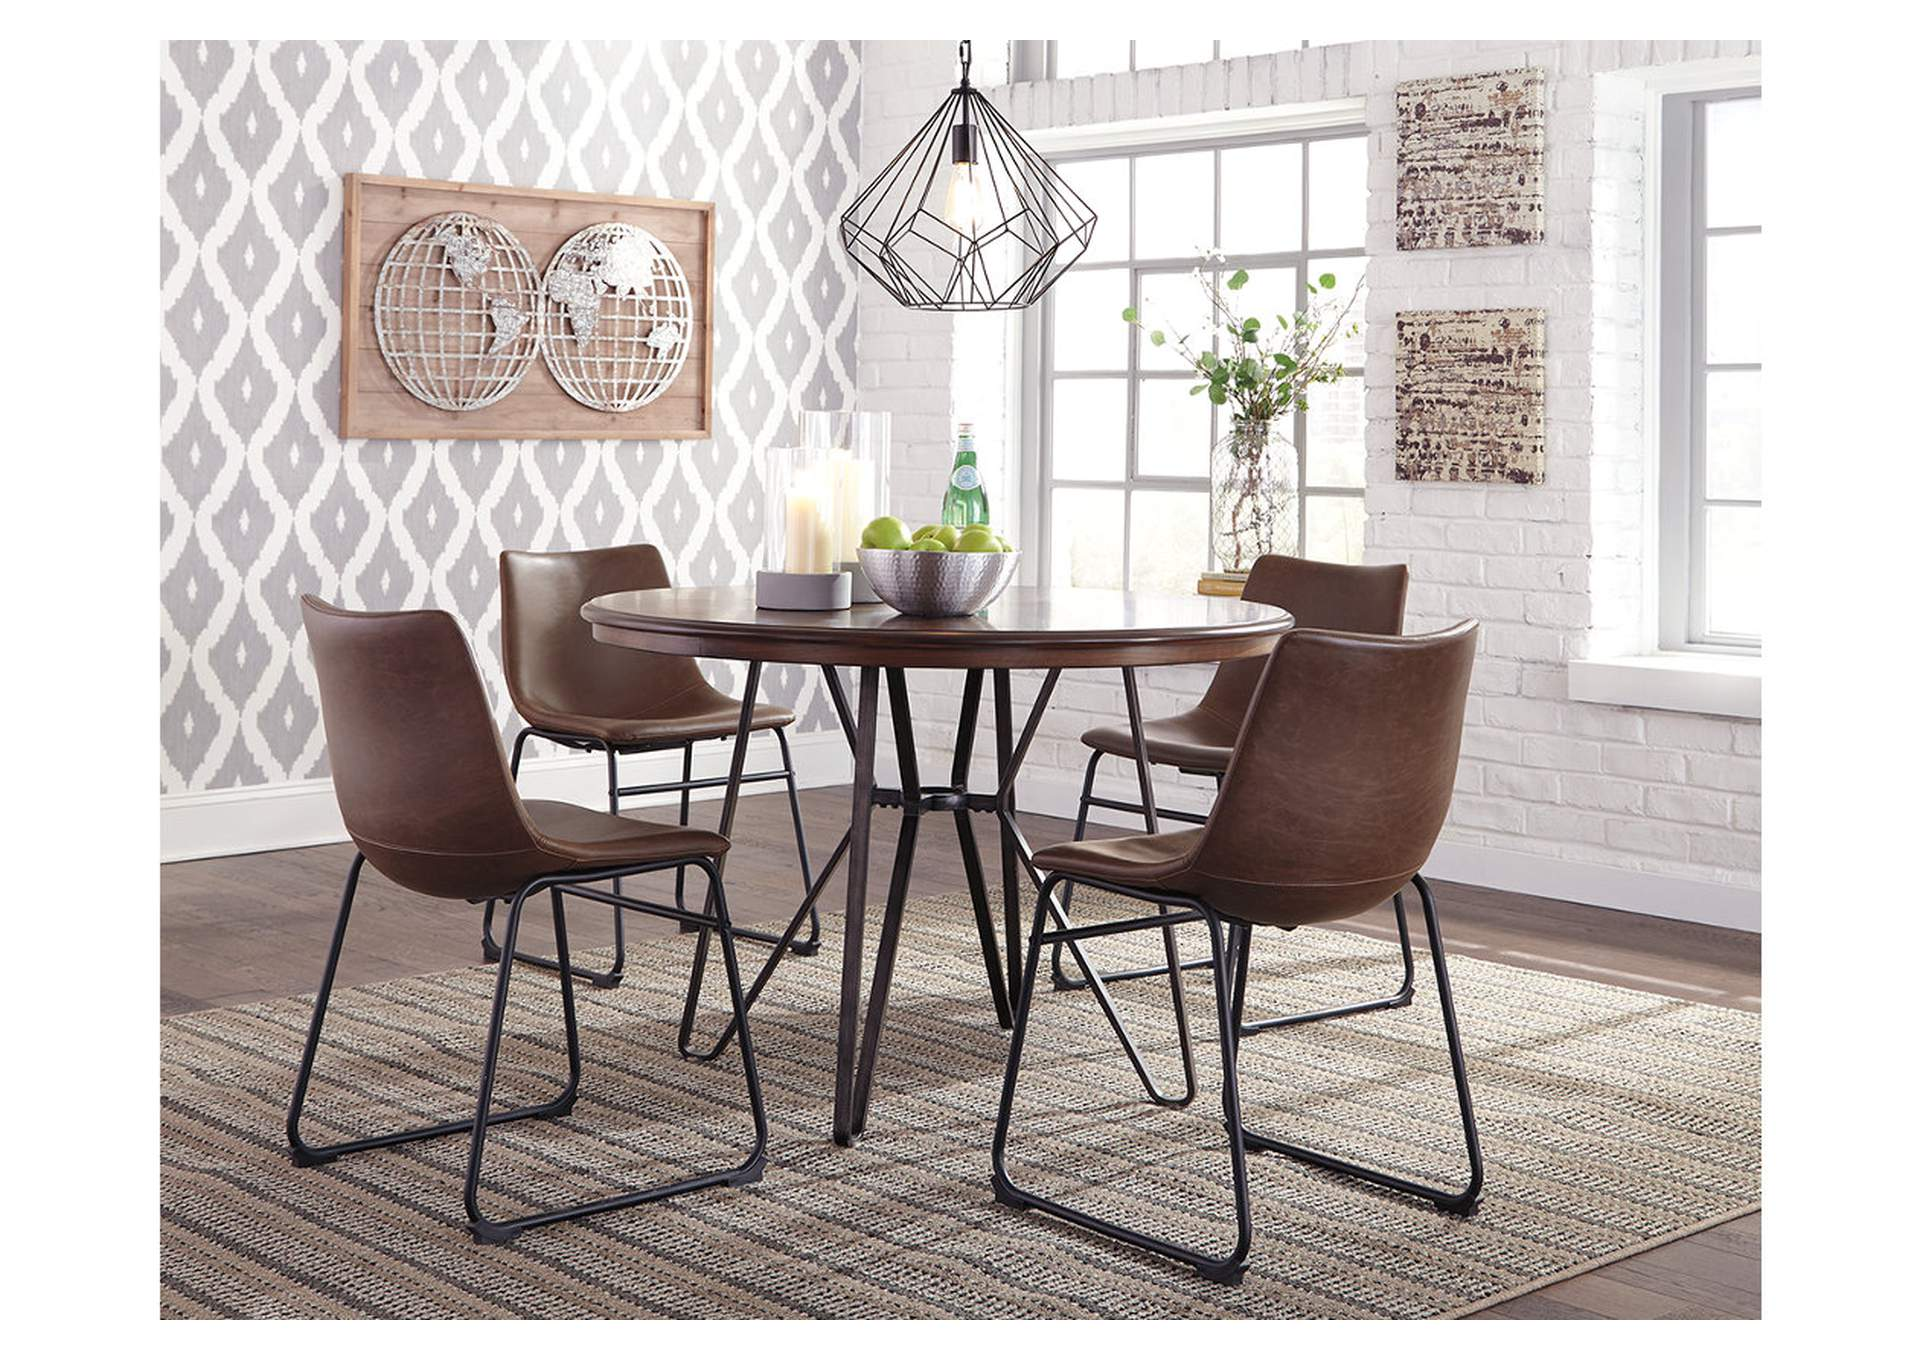 Centiar Two Tone Brown Round Dining Room Table Langlois Furniture Muskegon Mi